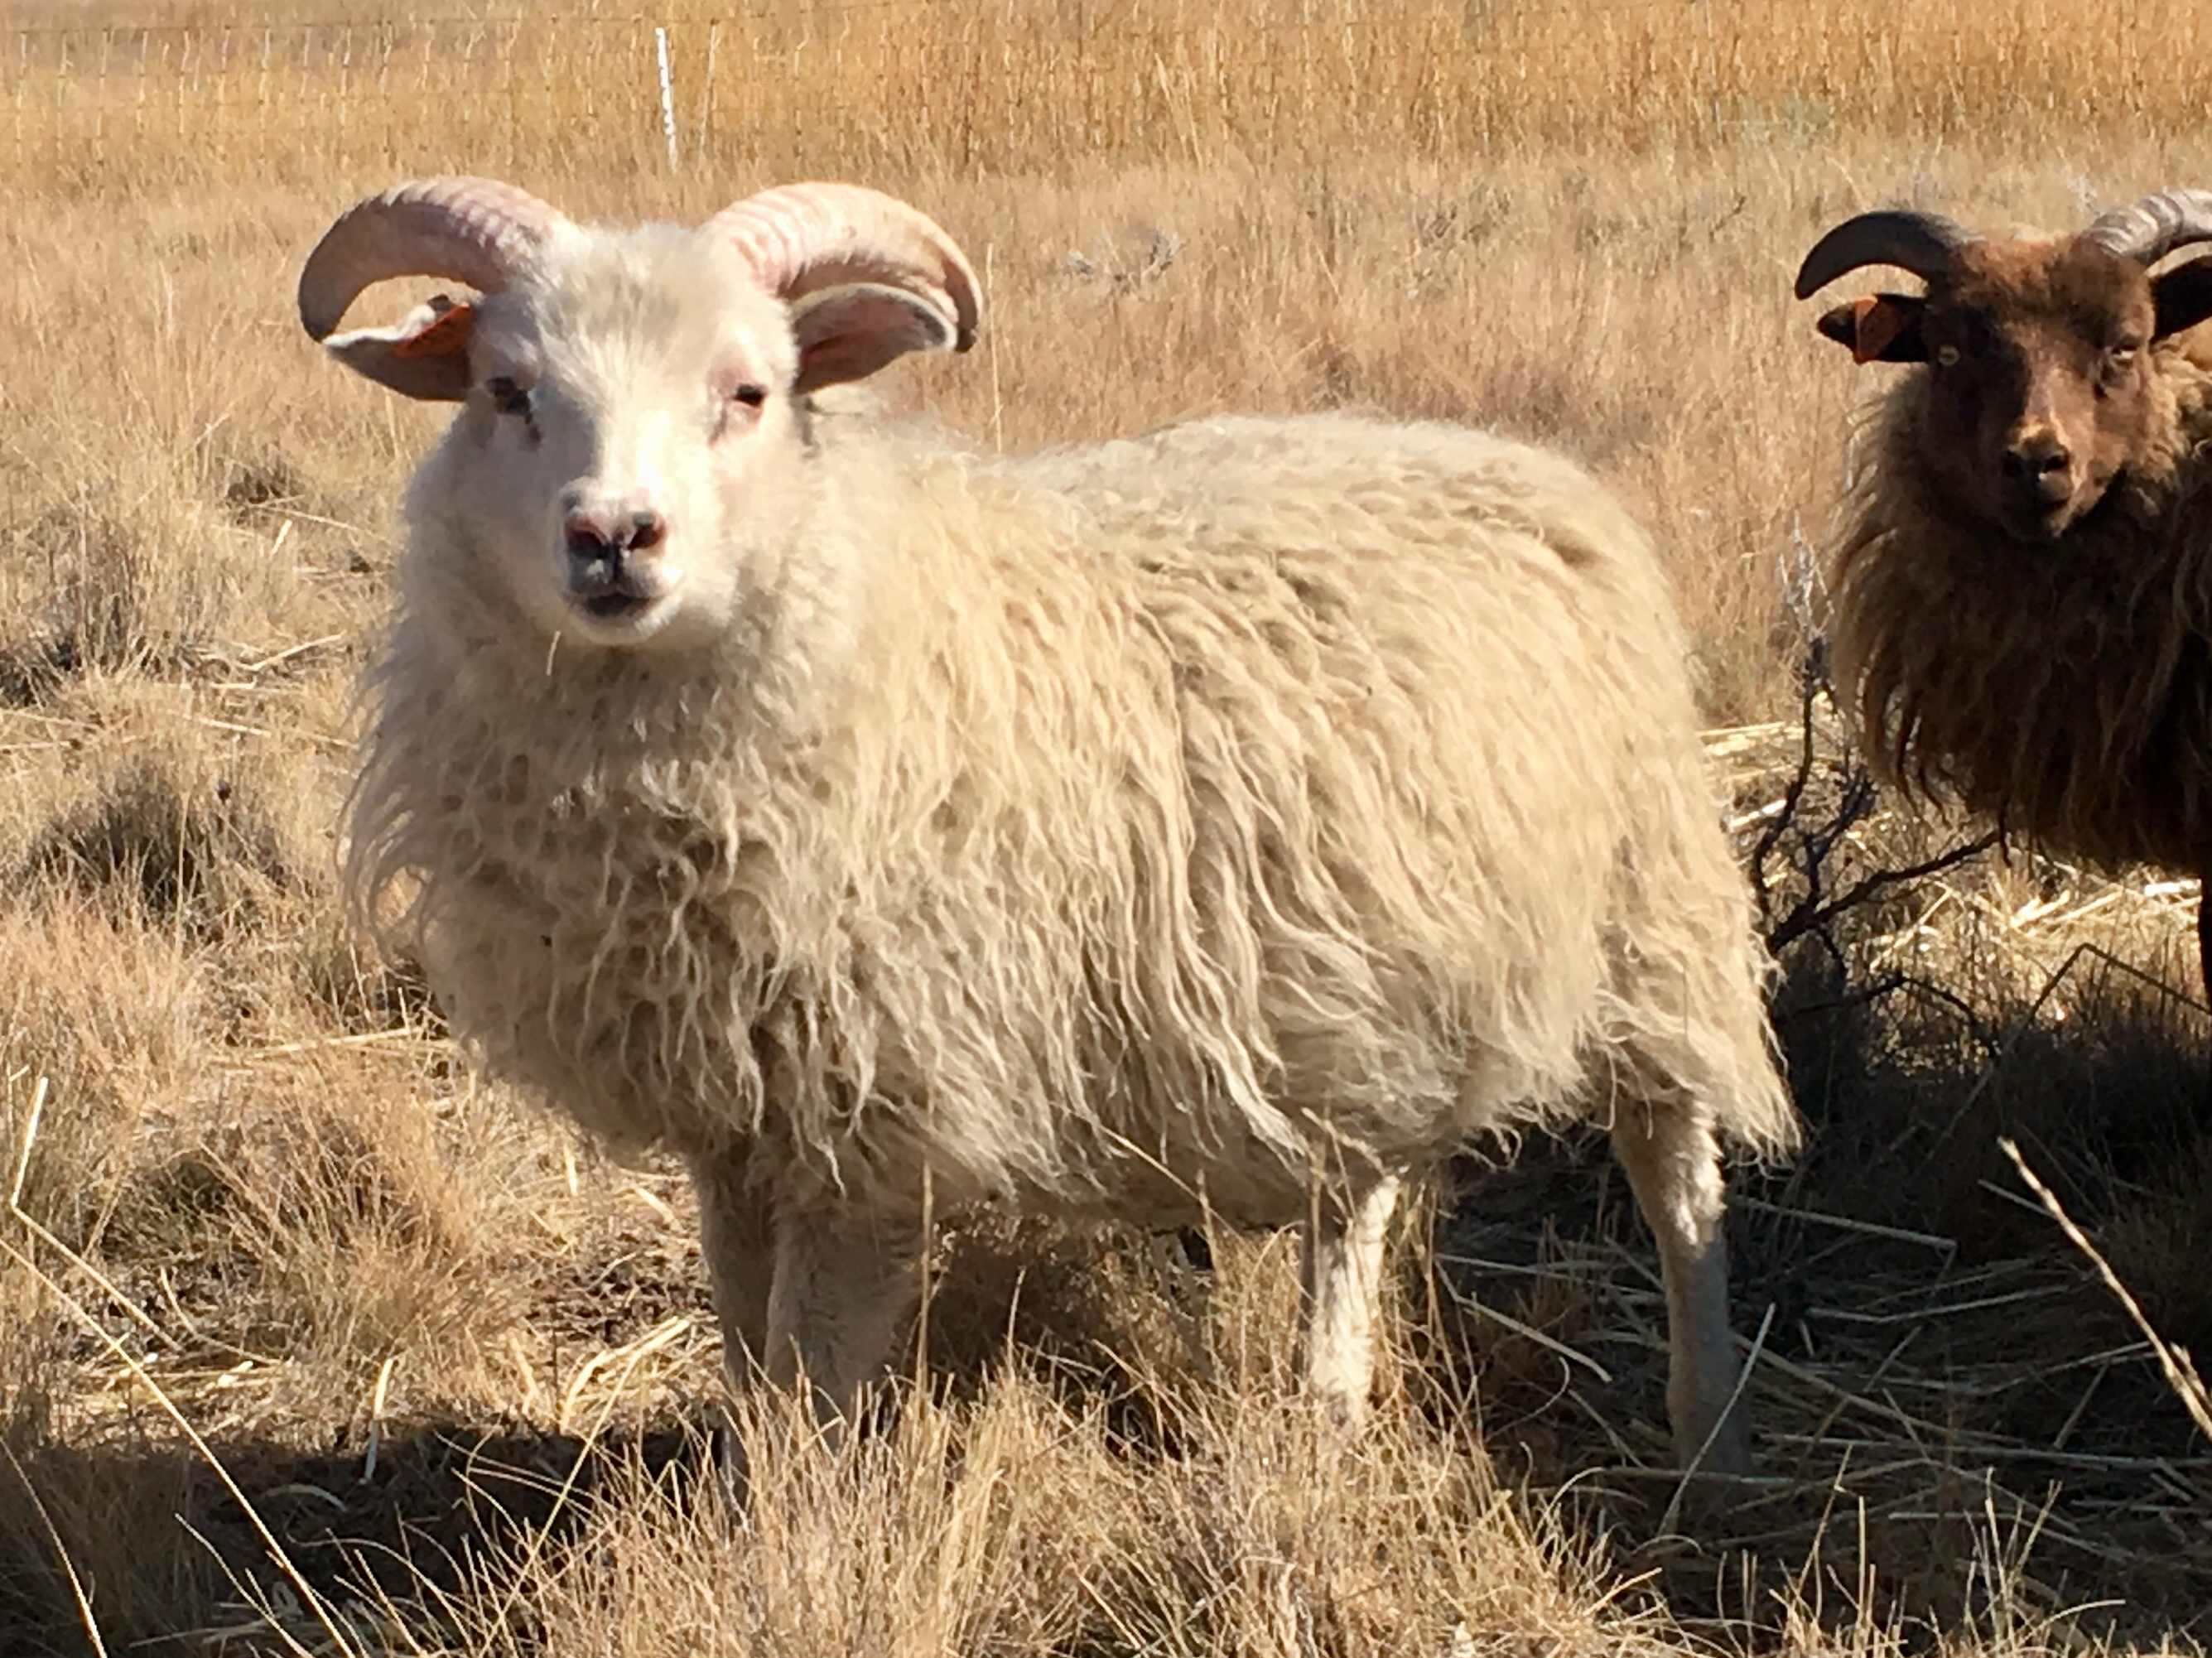 Copia Cove Icelandic Sheep | Butte Montana